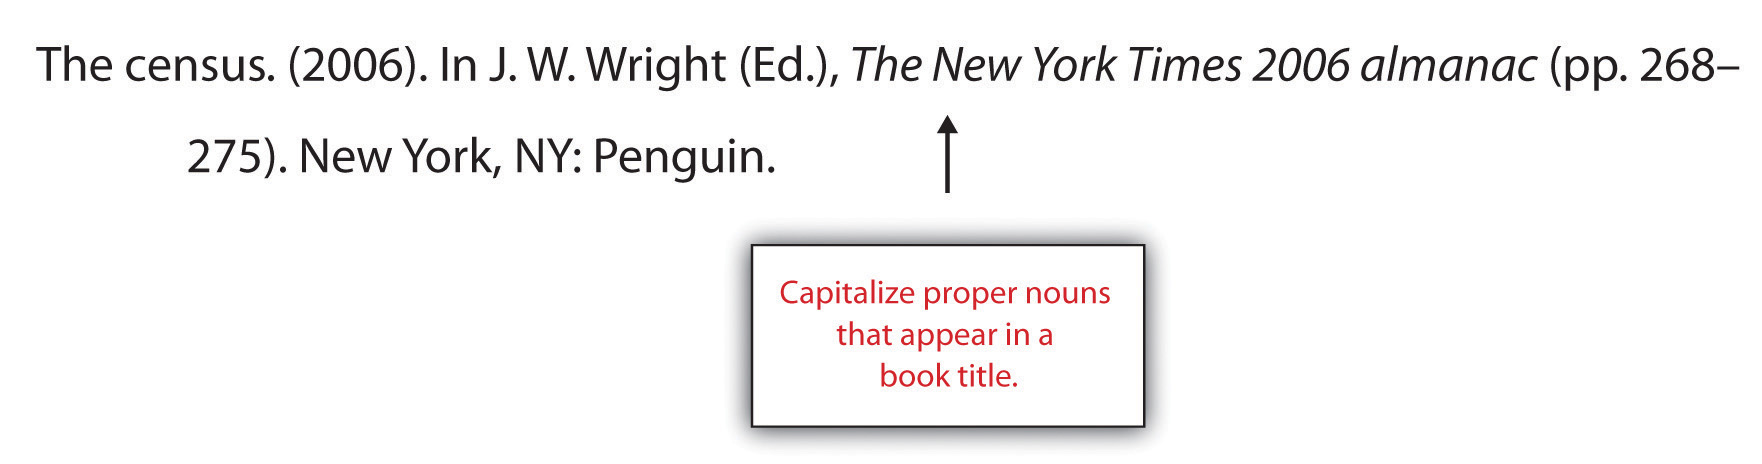 Capitalize proper nouns that appear in a book title while creating a references section